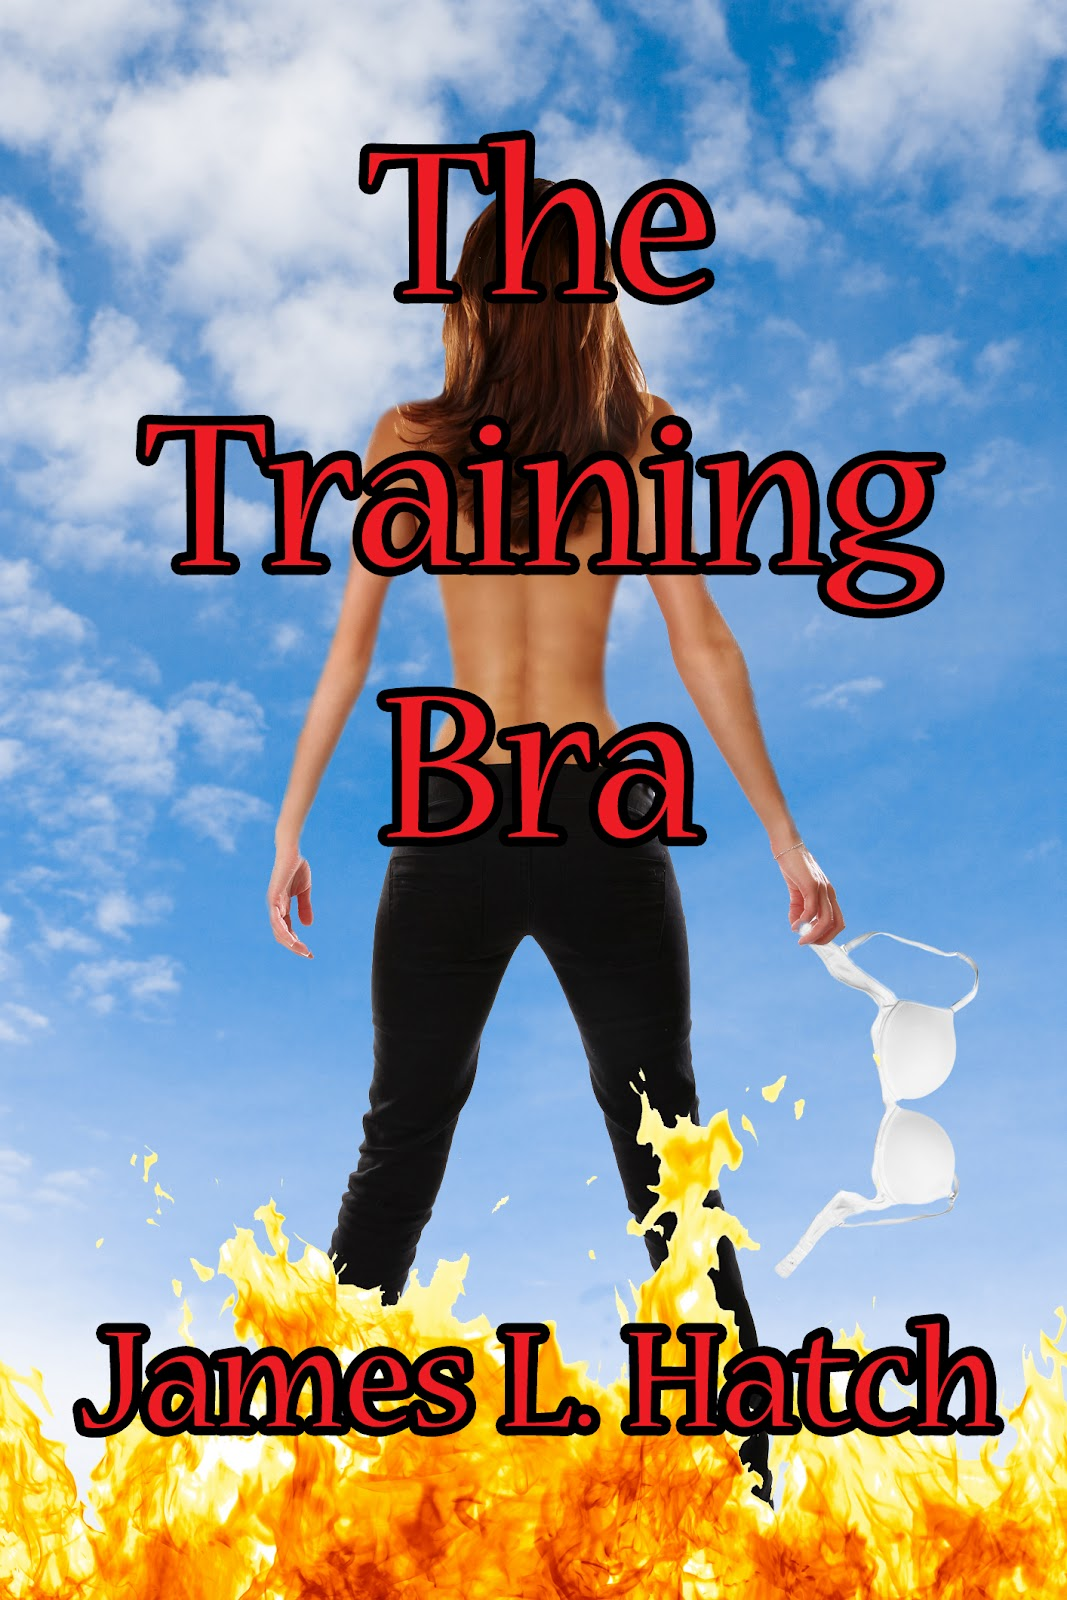 The Training Bra James L. Hatch